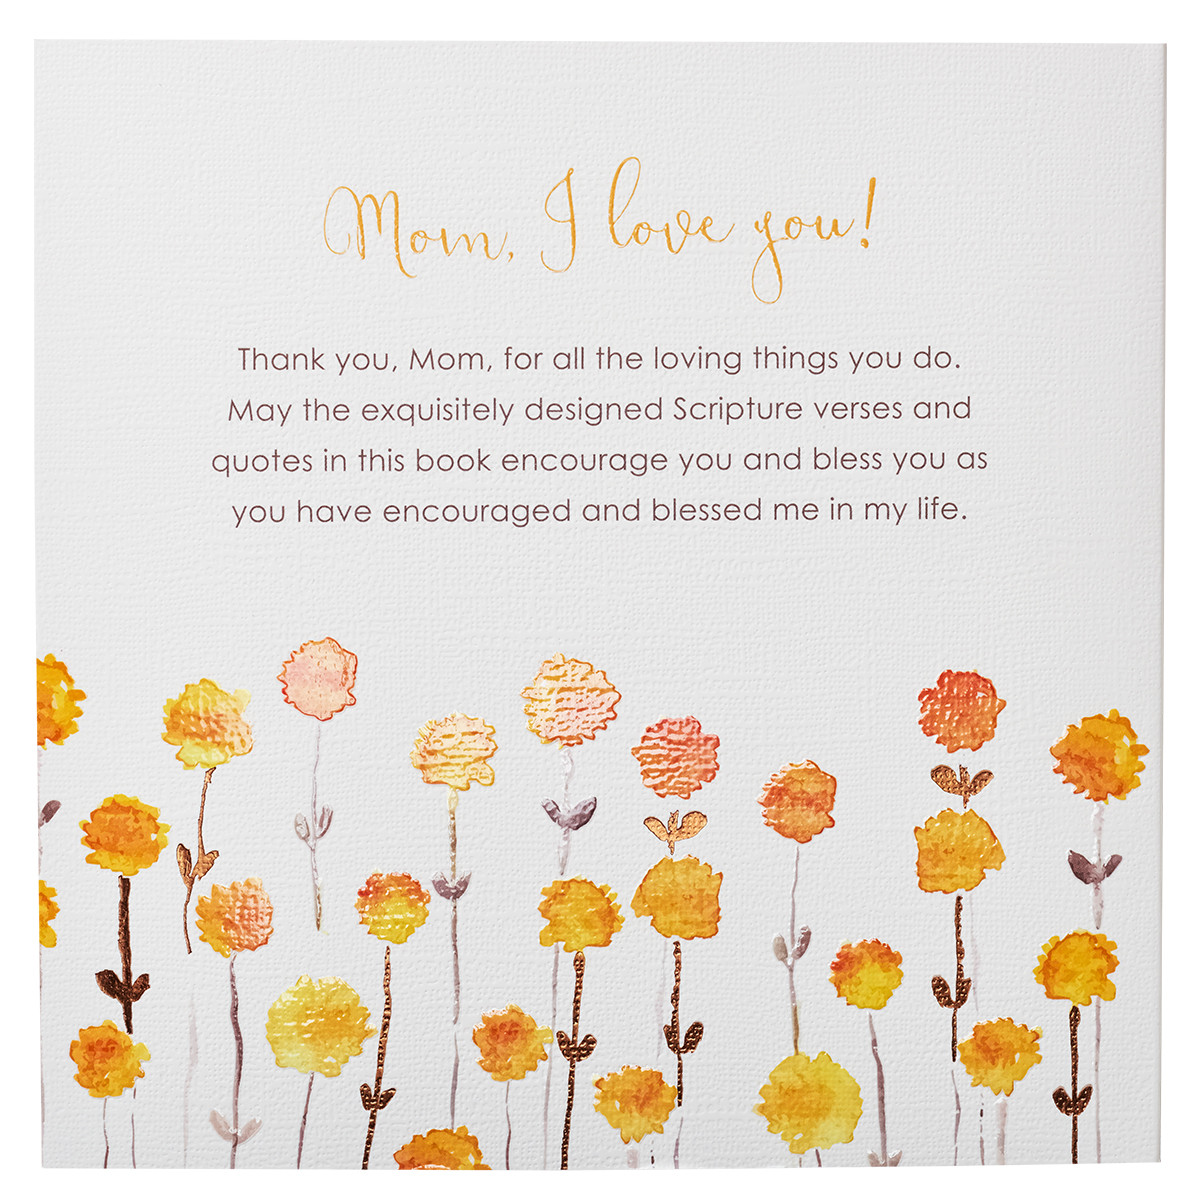 Love You Forever Book Quotes Fascinating Mom I Love You Always & Forever Gift Book  Christian Art Gifts